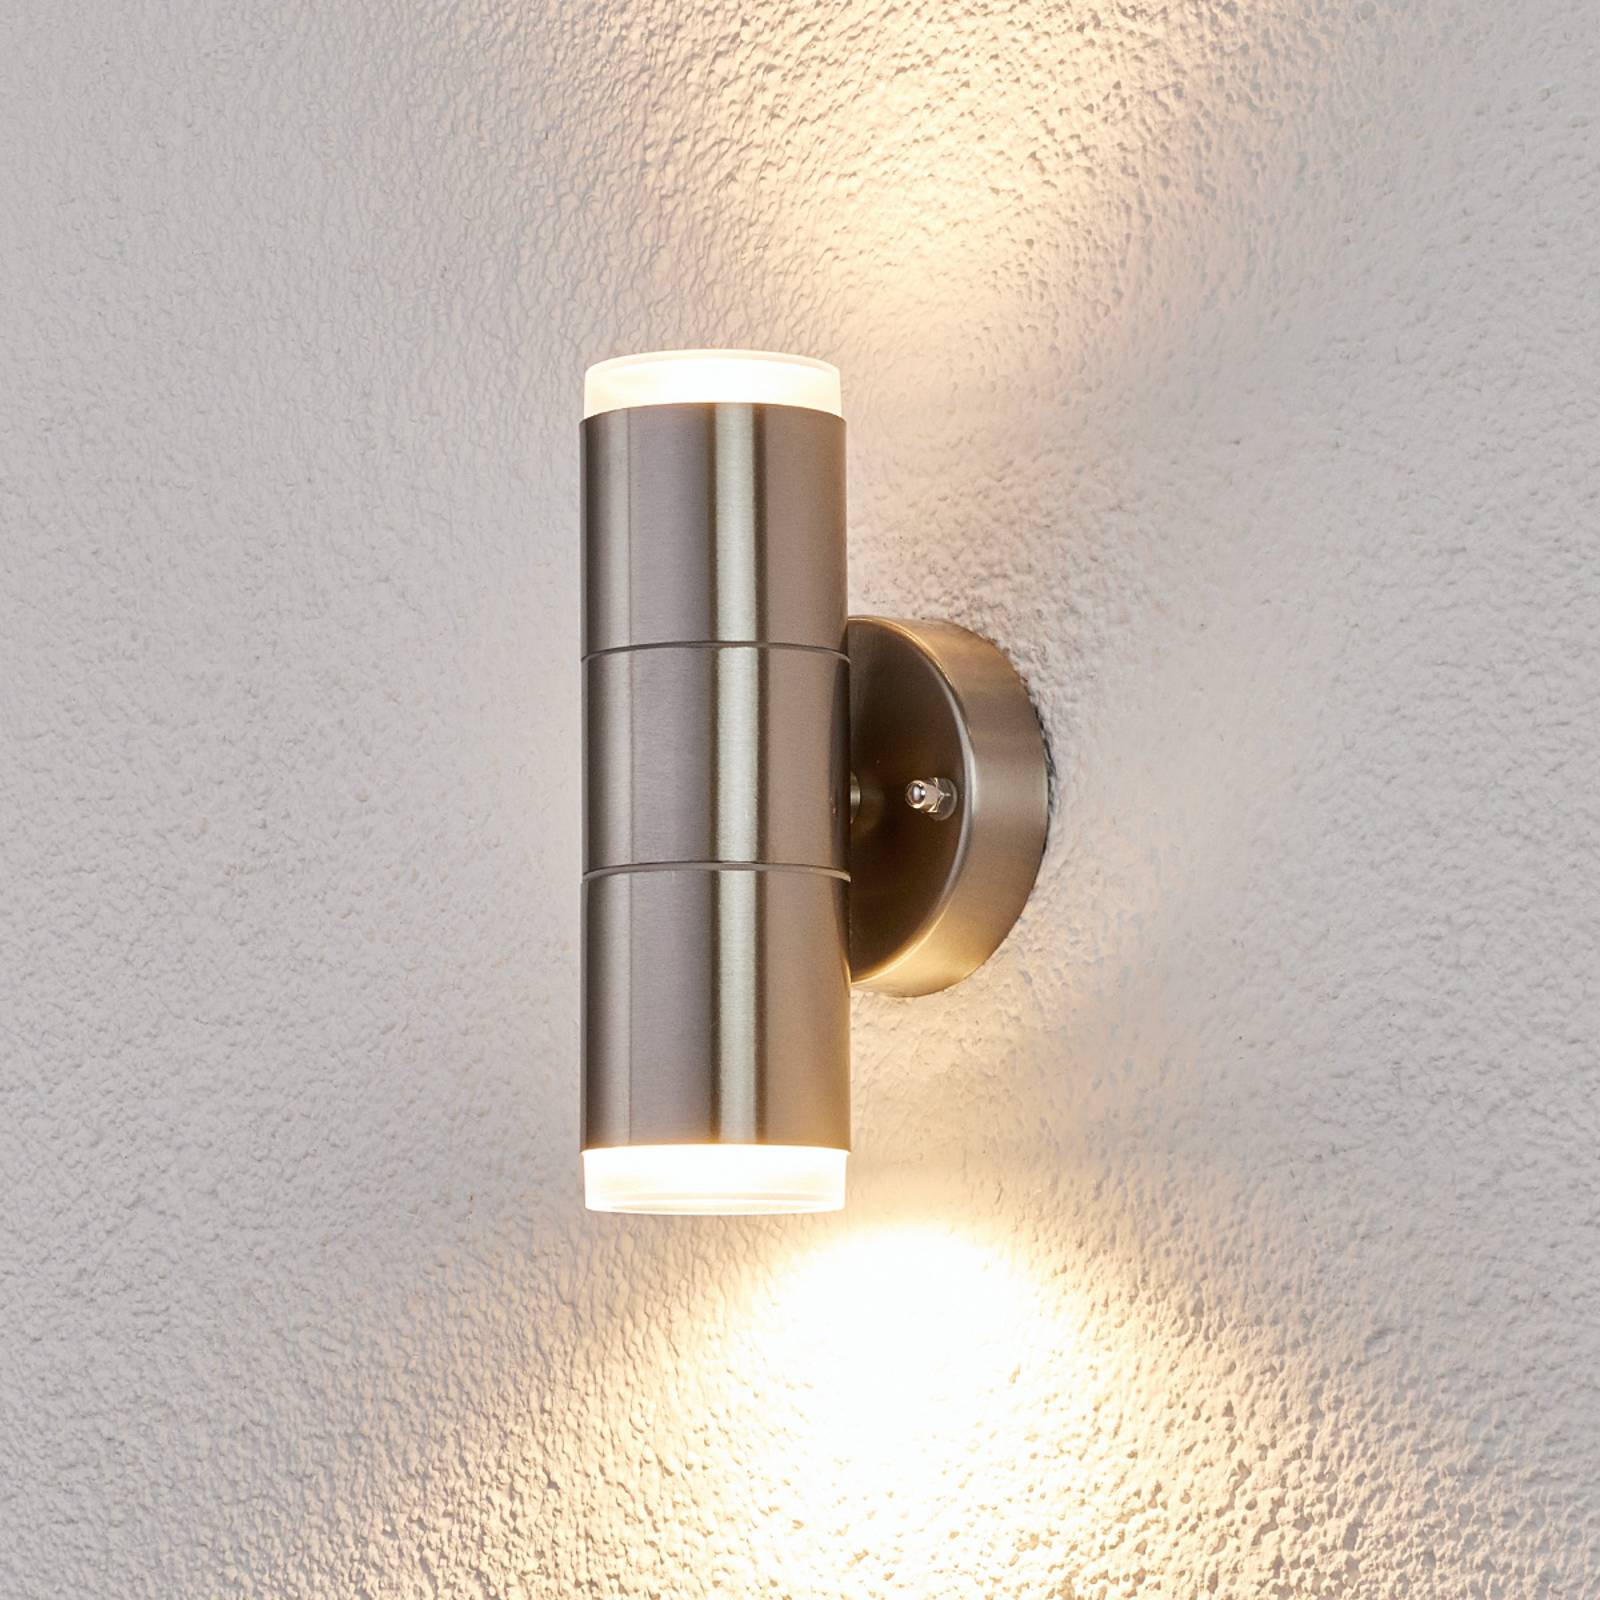 Stainless steel outdoor wall light Delina from Lindby